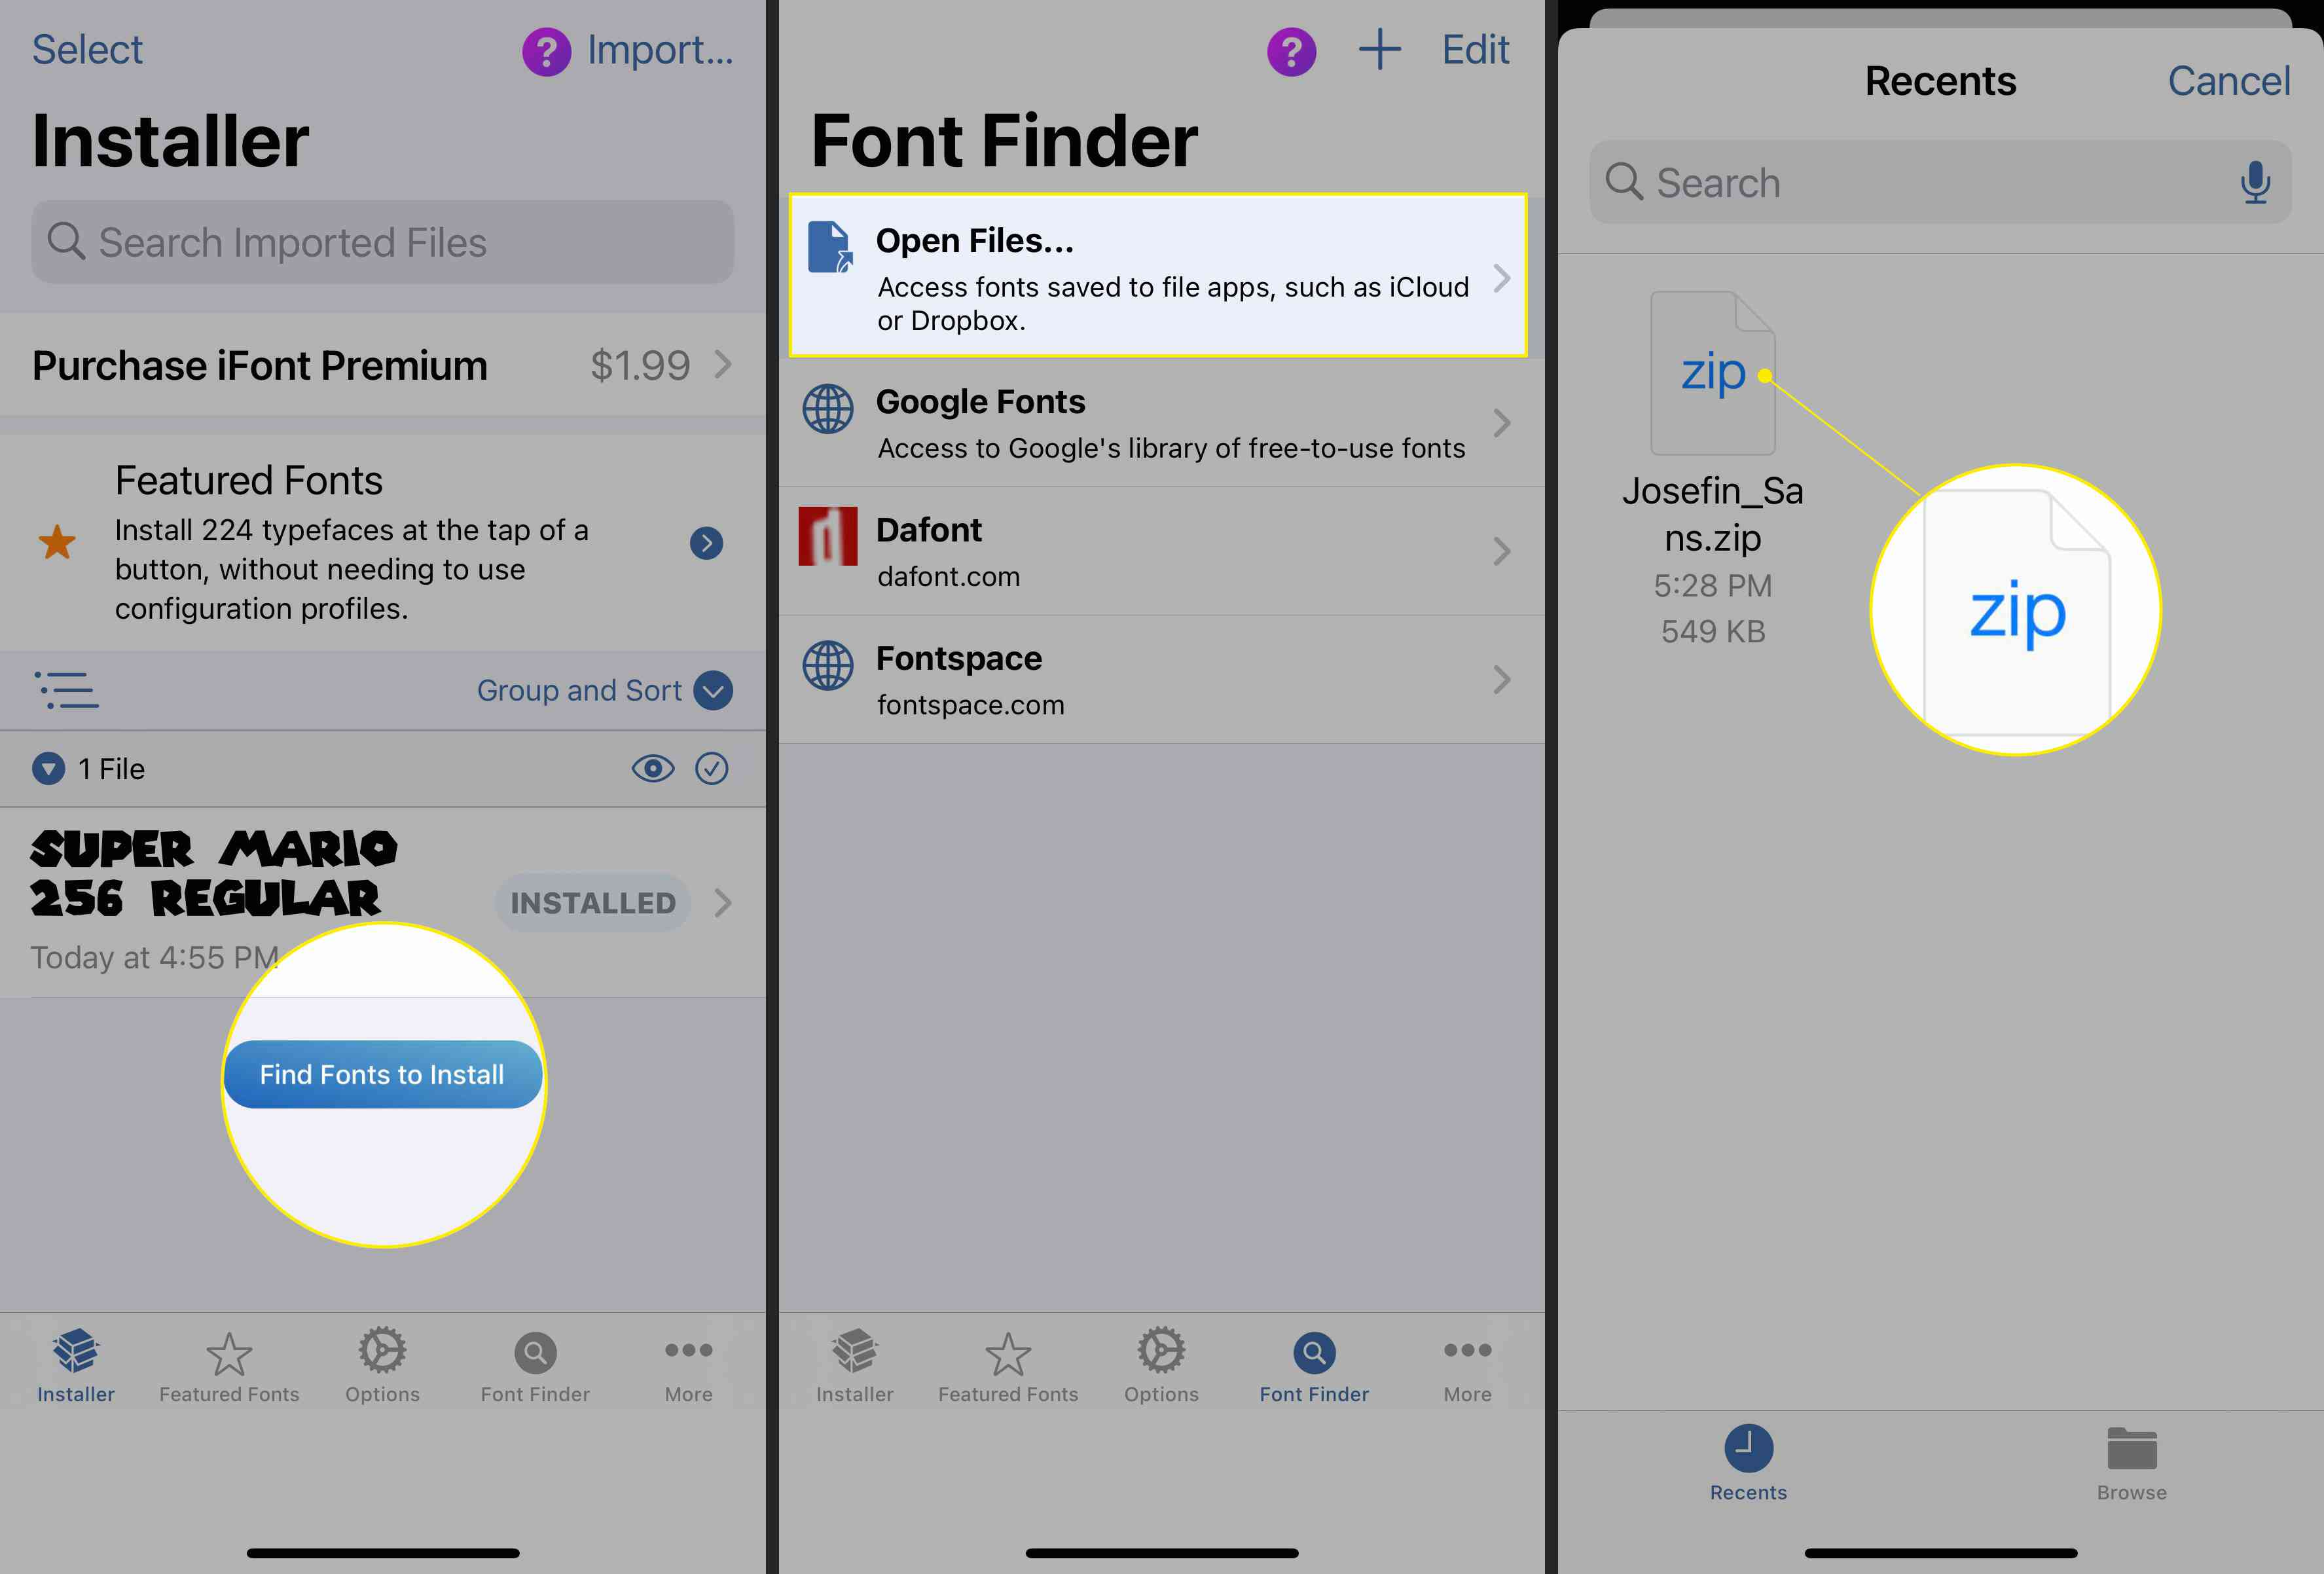 Font Finder with Find Fonts to Install, Open Files, and the font file highlighted